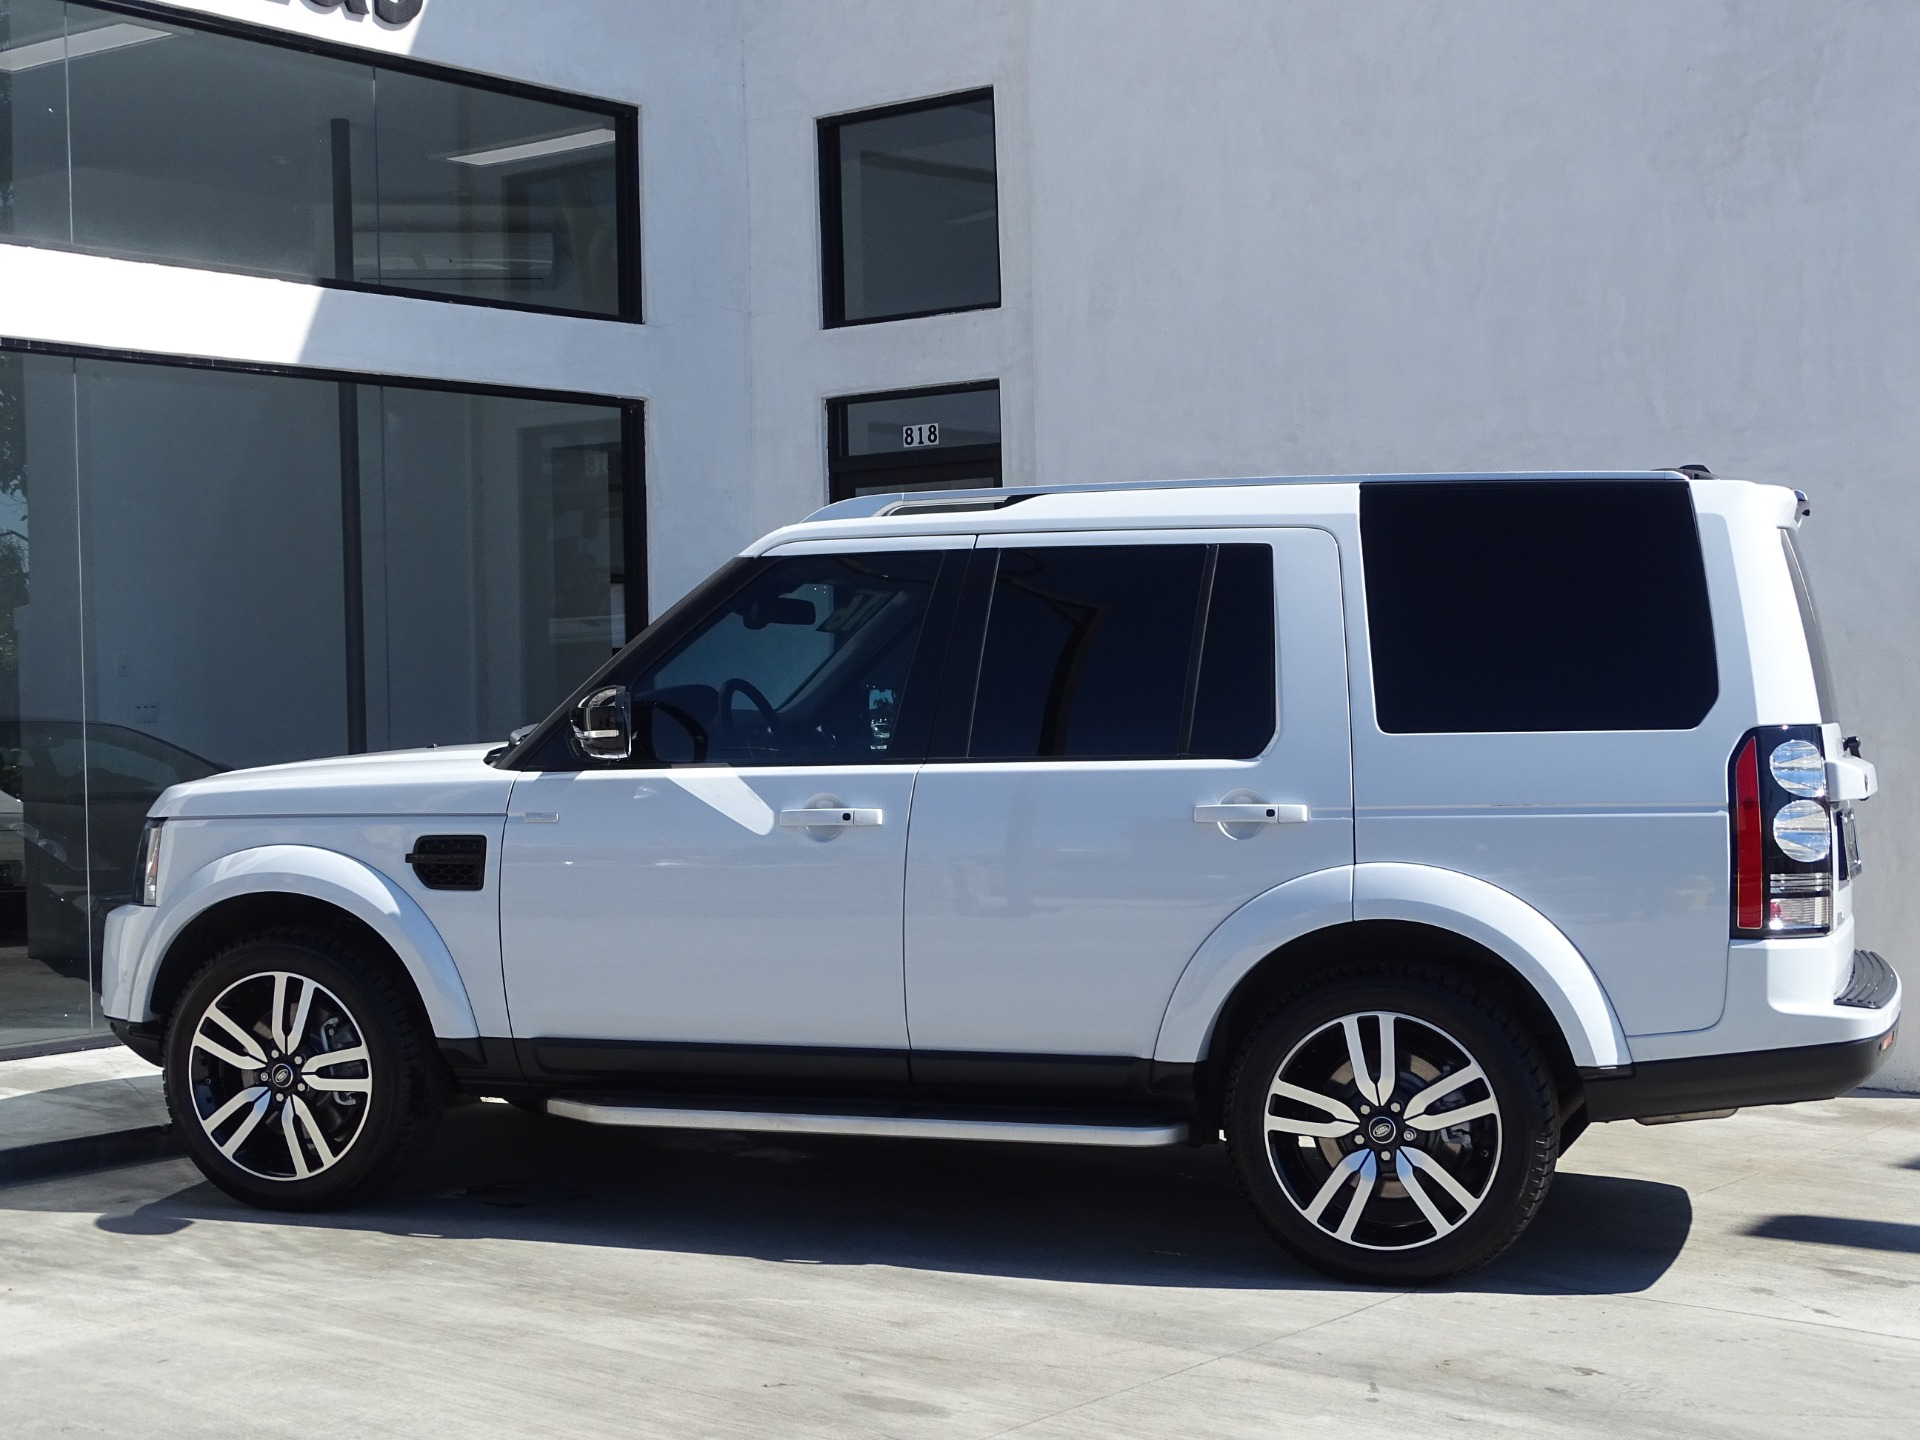 2016 Land Rover Lr4 Hse Lux Landmark Edition Stock 6433 For Sale Near Redondo Beach